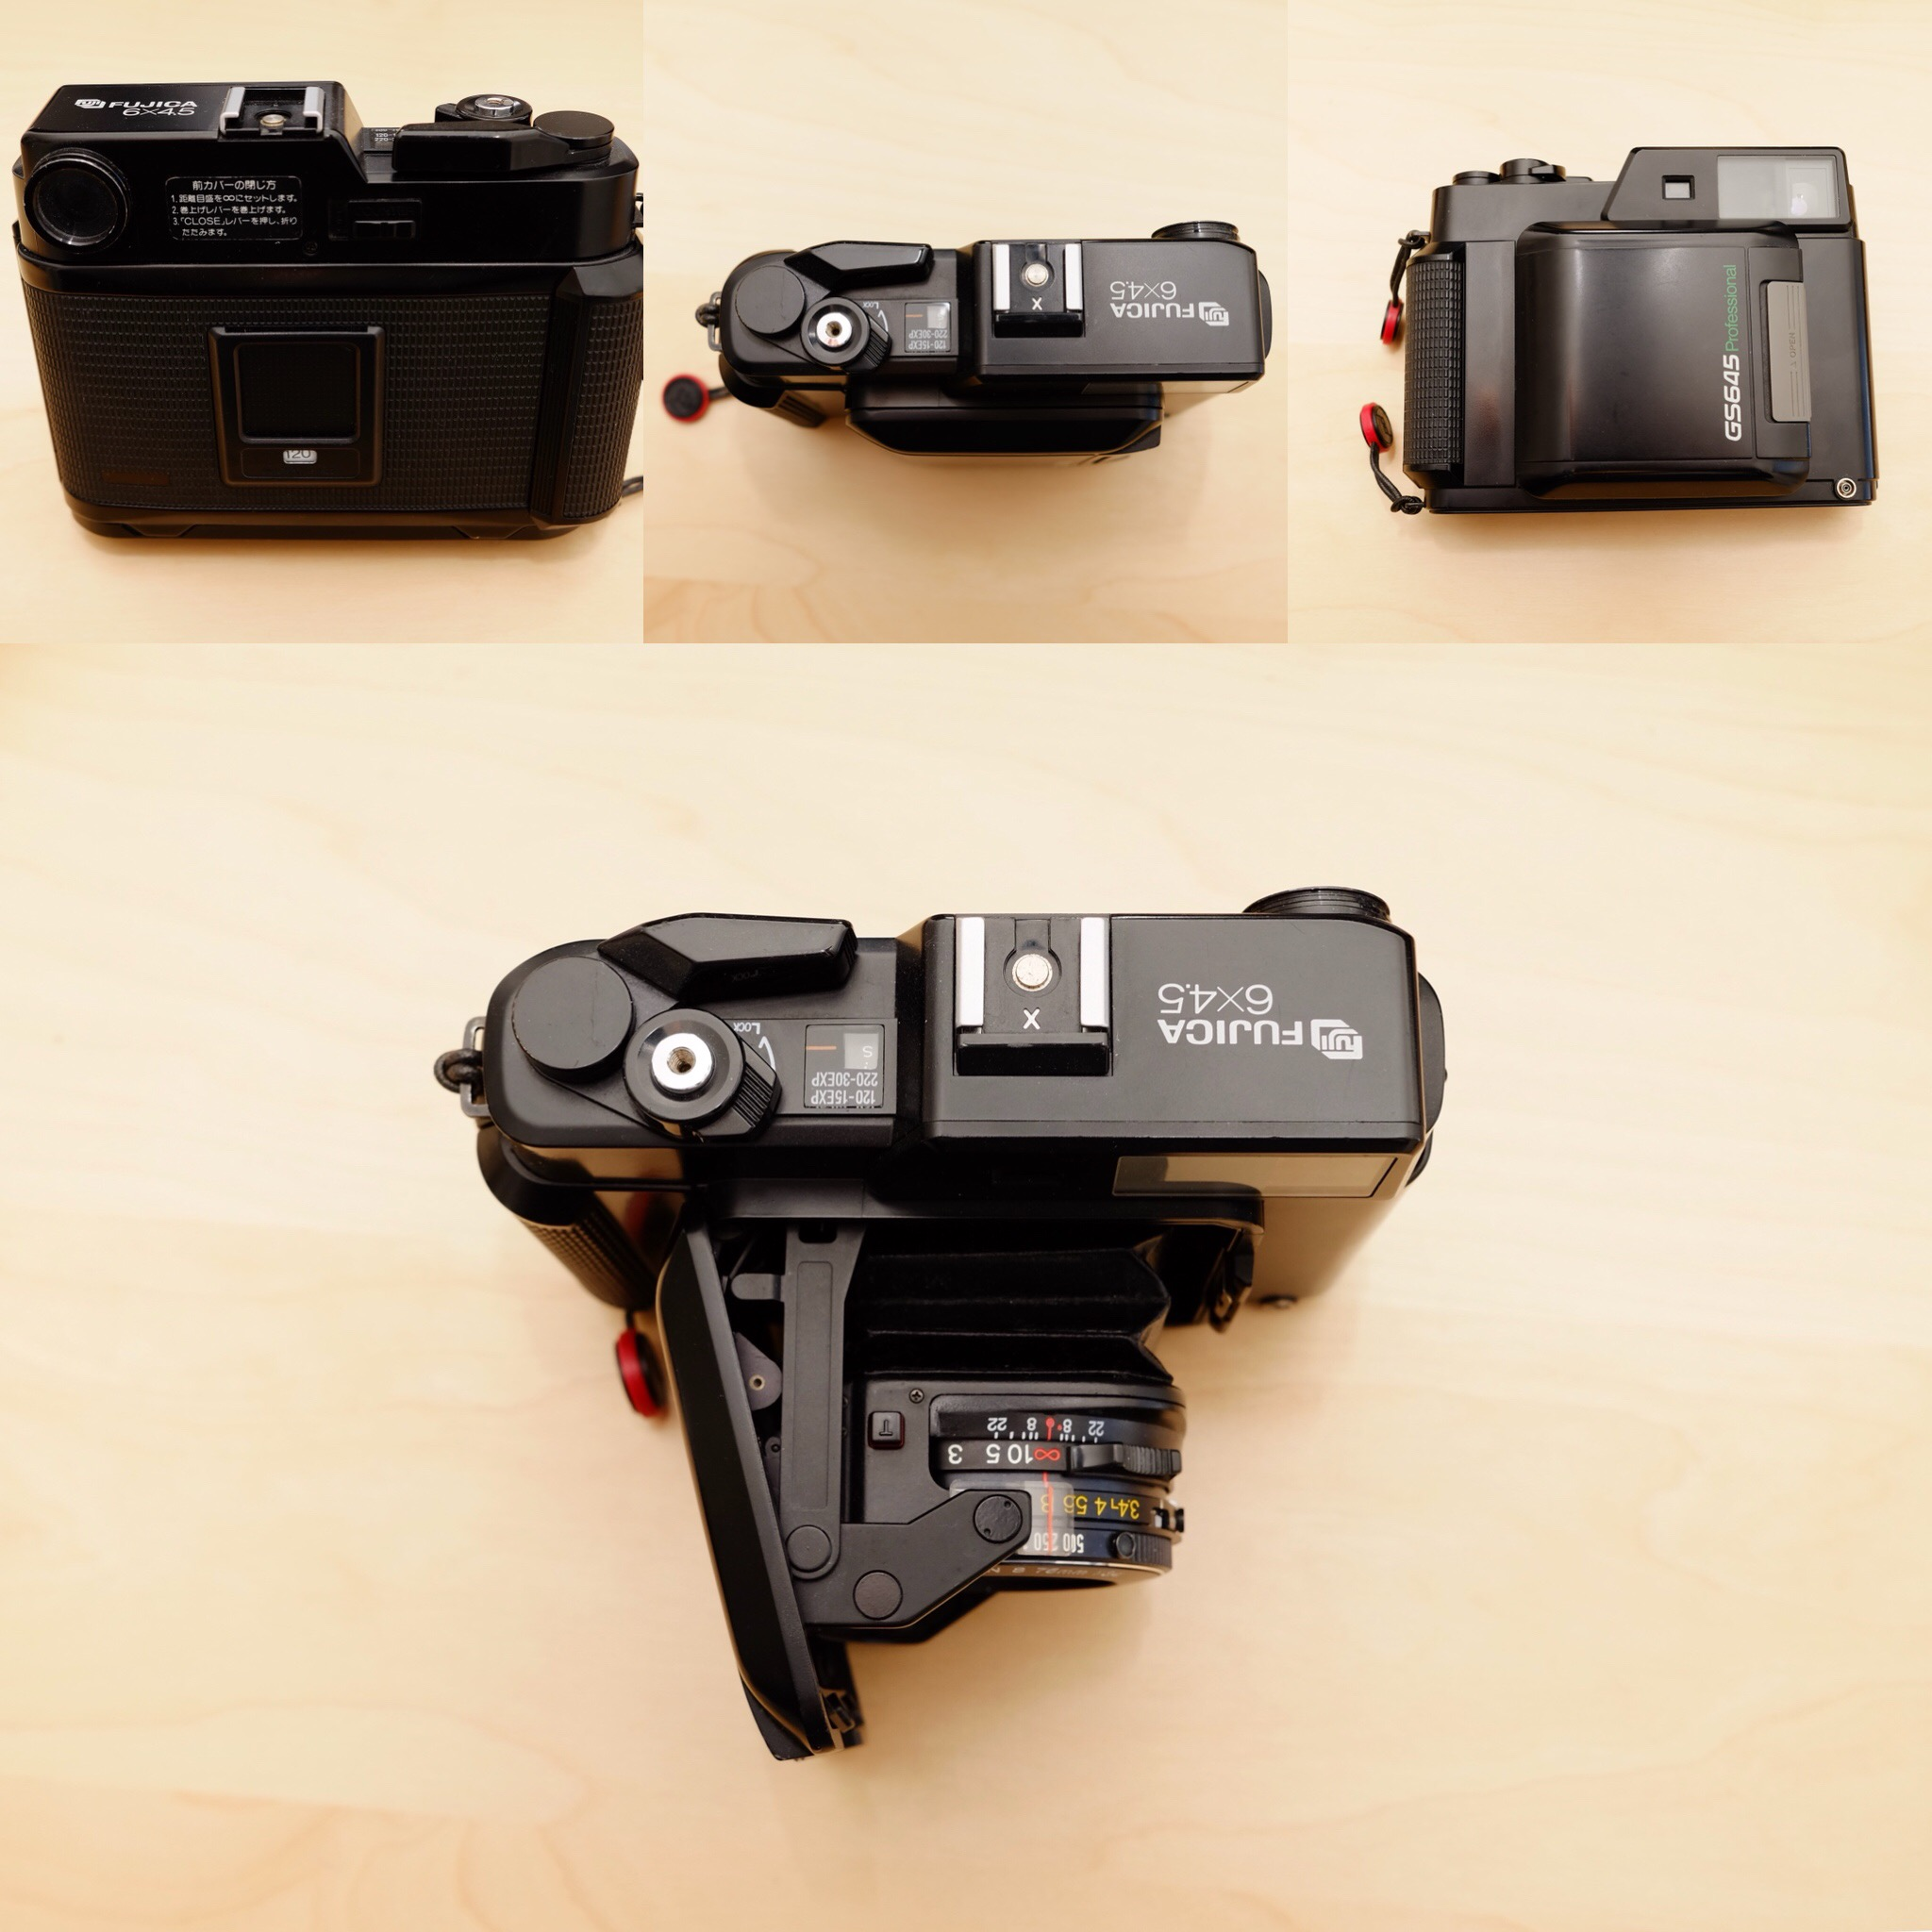 The GS645 from different angles